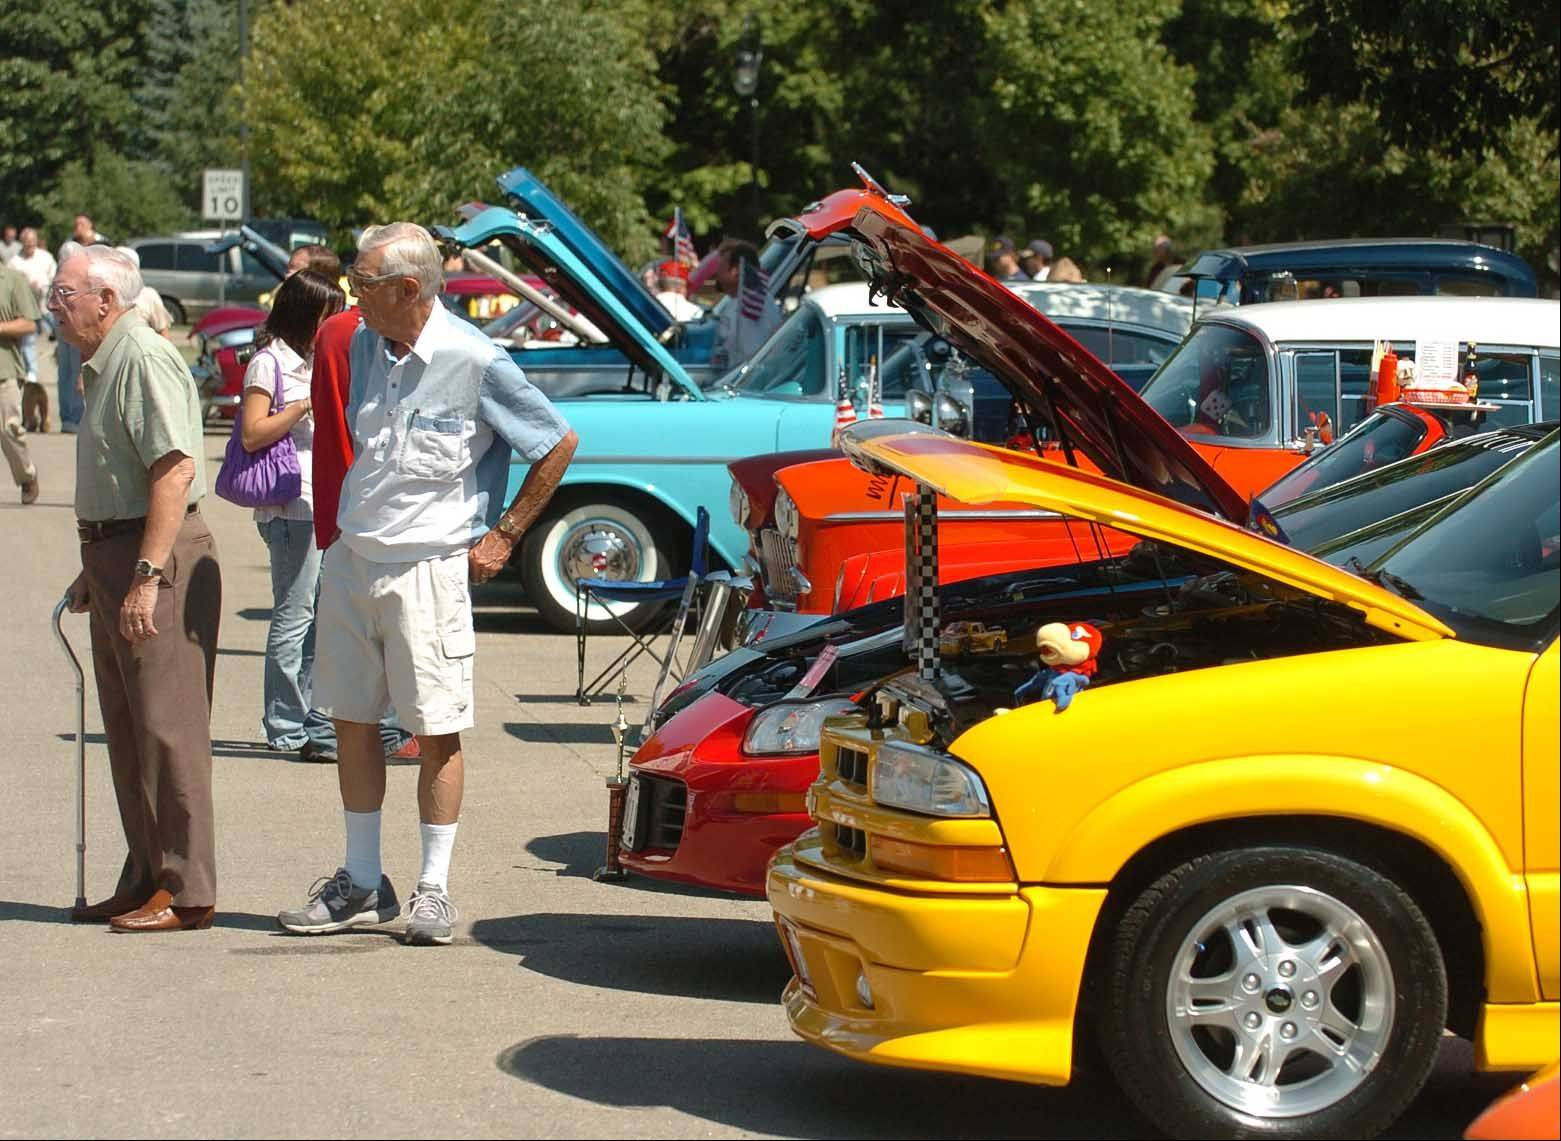 Seven years ago Naperville�s Judd Kendall VFW post hosted the Cruisin� for the Troops Car Show. The event has since morphed into the widely successful Rockin� for the Troops concert held in mid-July.